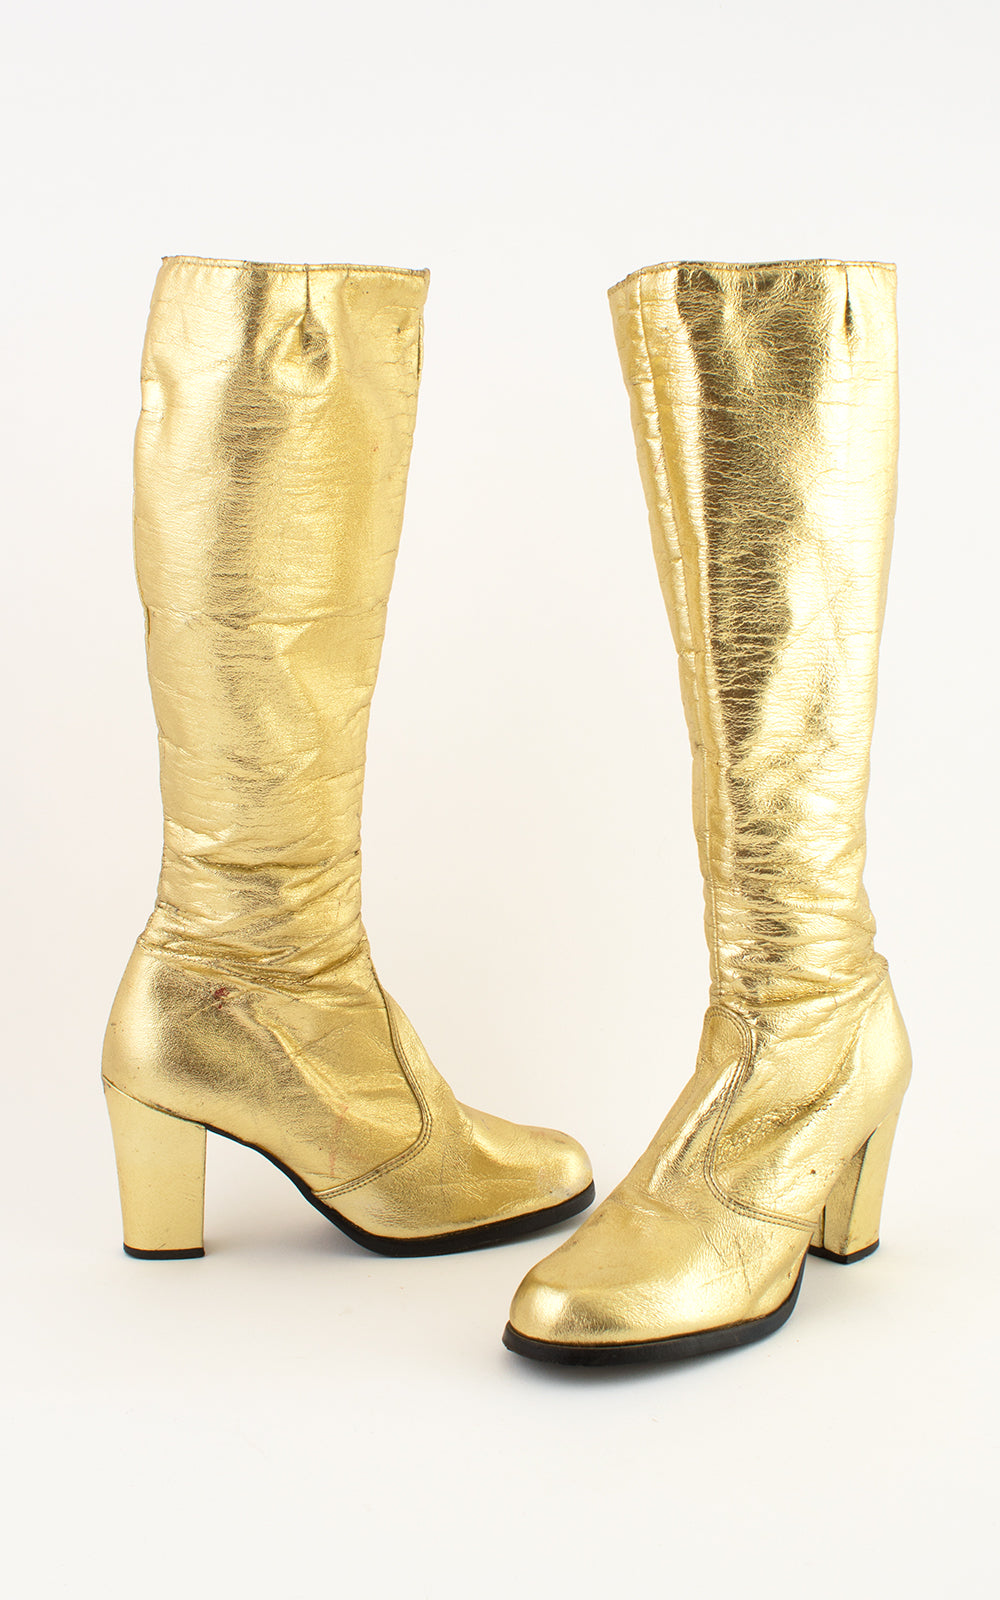 1960s Metallic Gold Go Go Boots